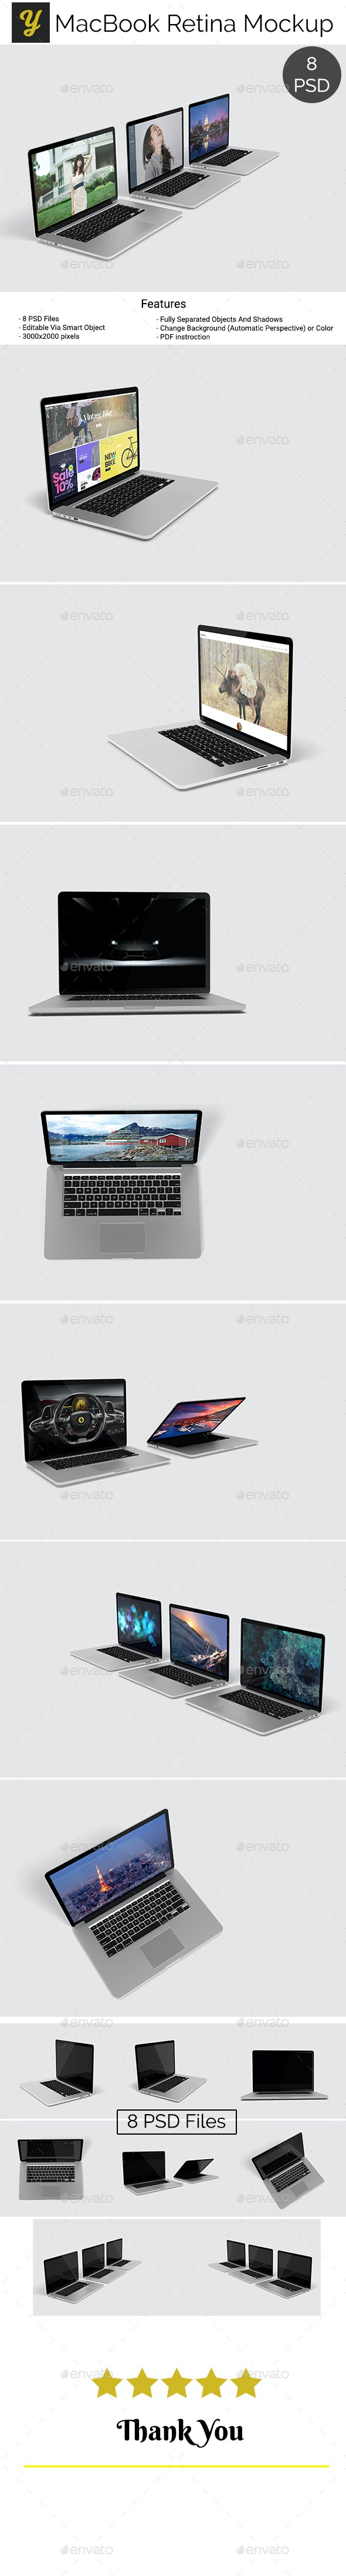 MacBook Retina Mockup - Laptop Displays